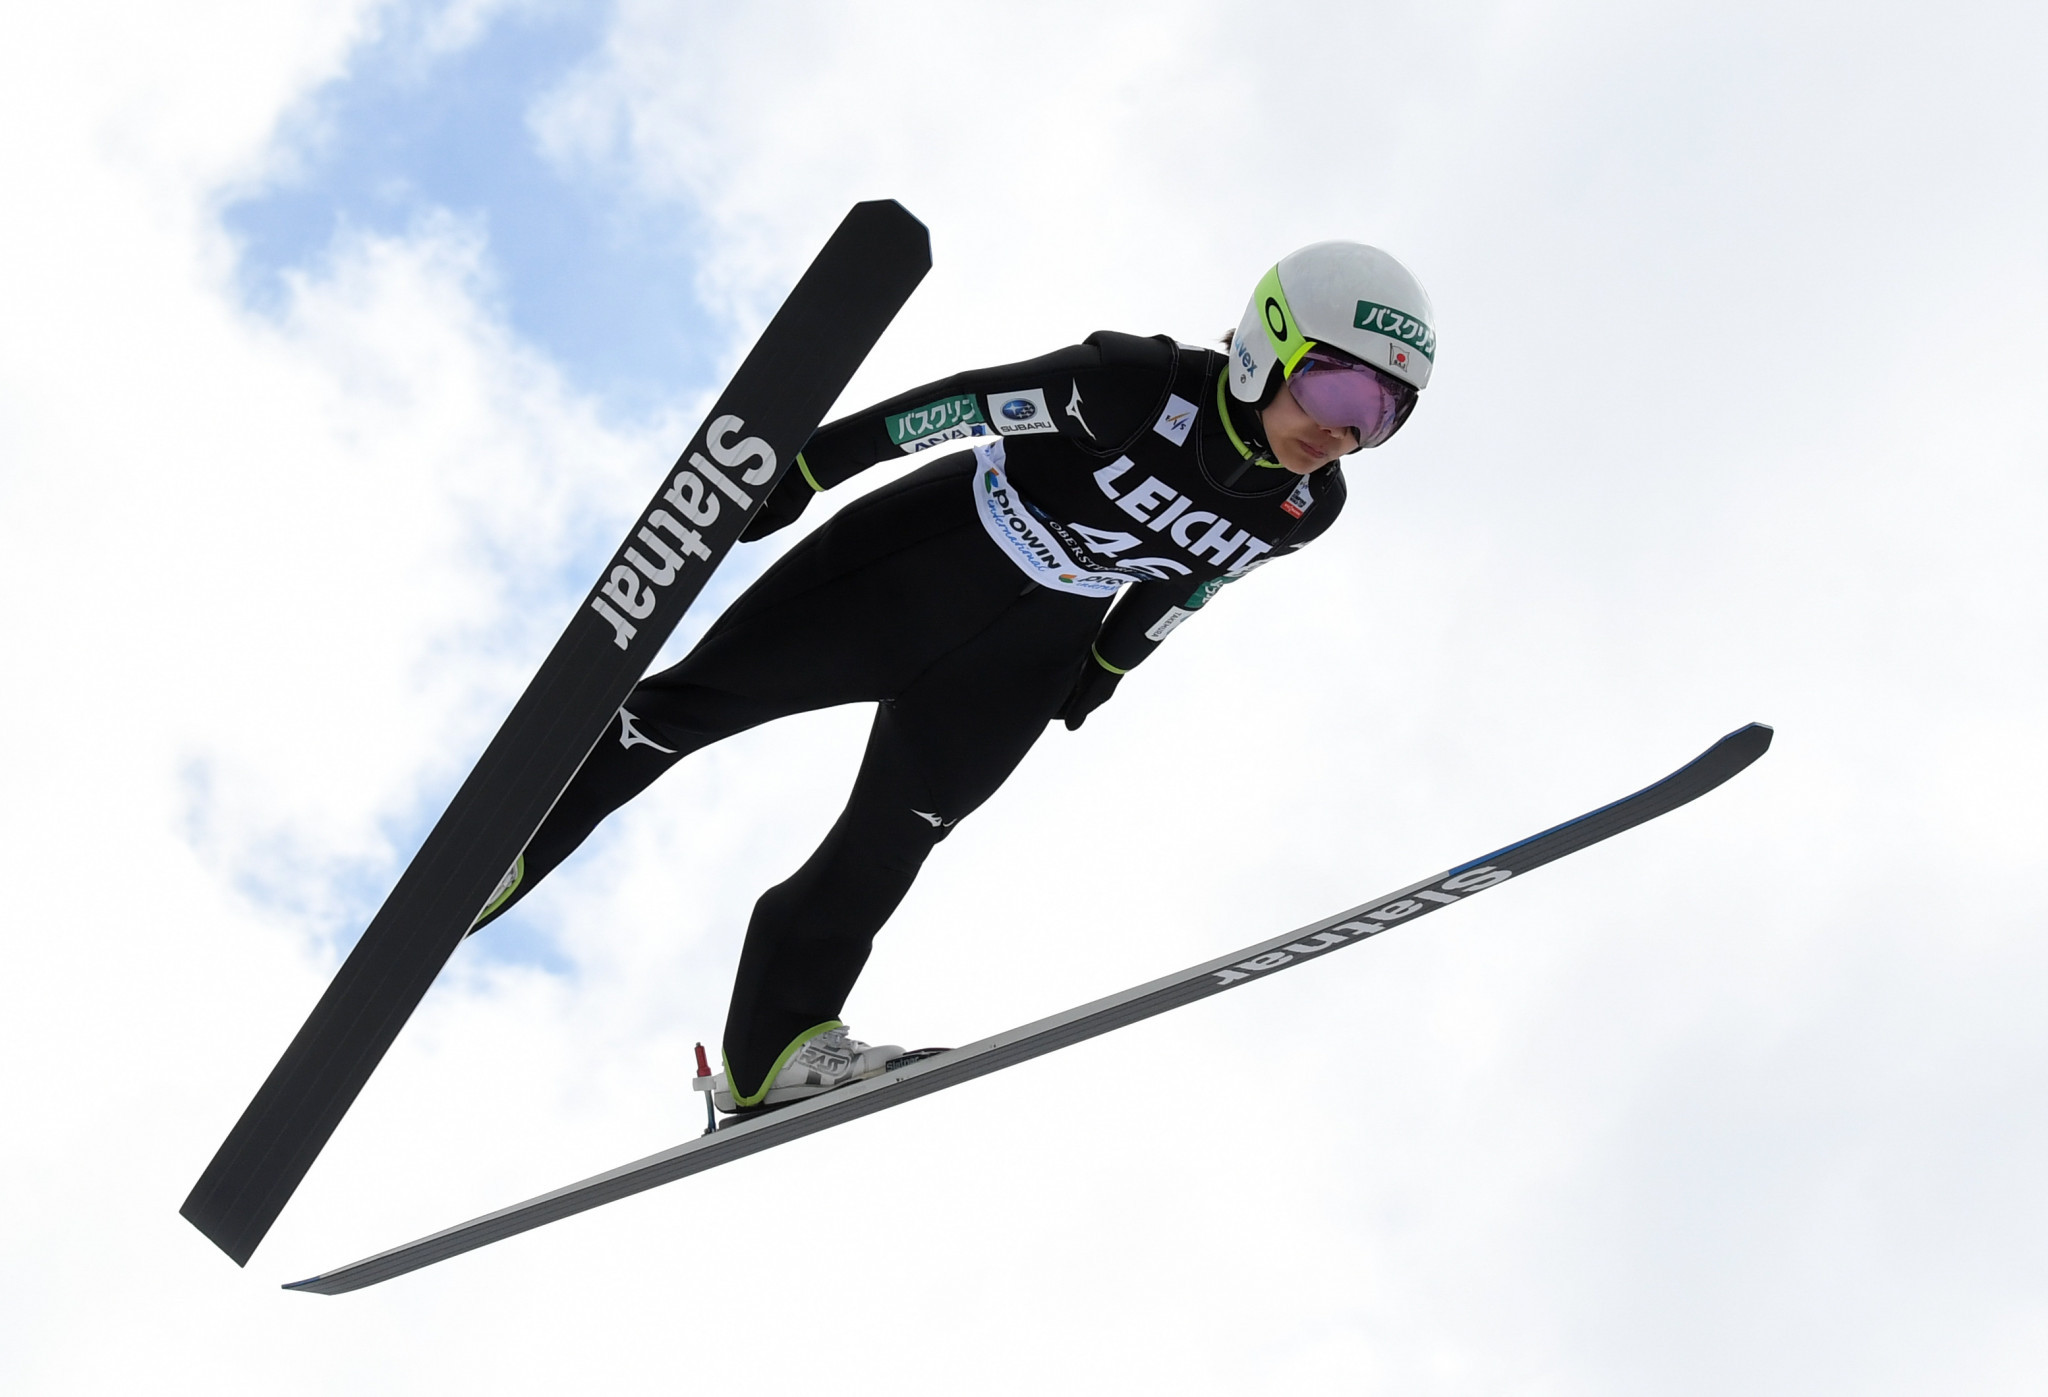 Japan's Takanashi tops individual normal hill qualification standings at women's FIS Ski Jumping World Cup in Lillehammer